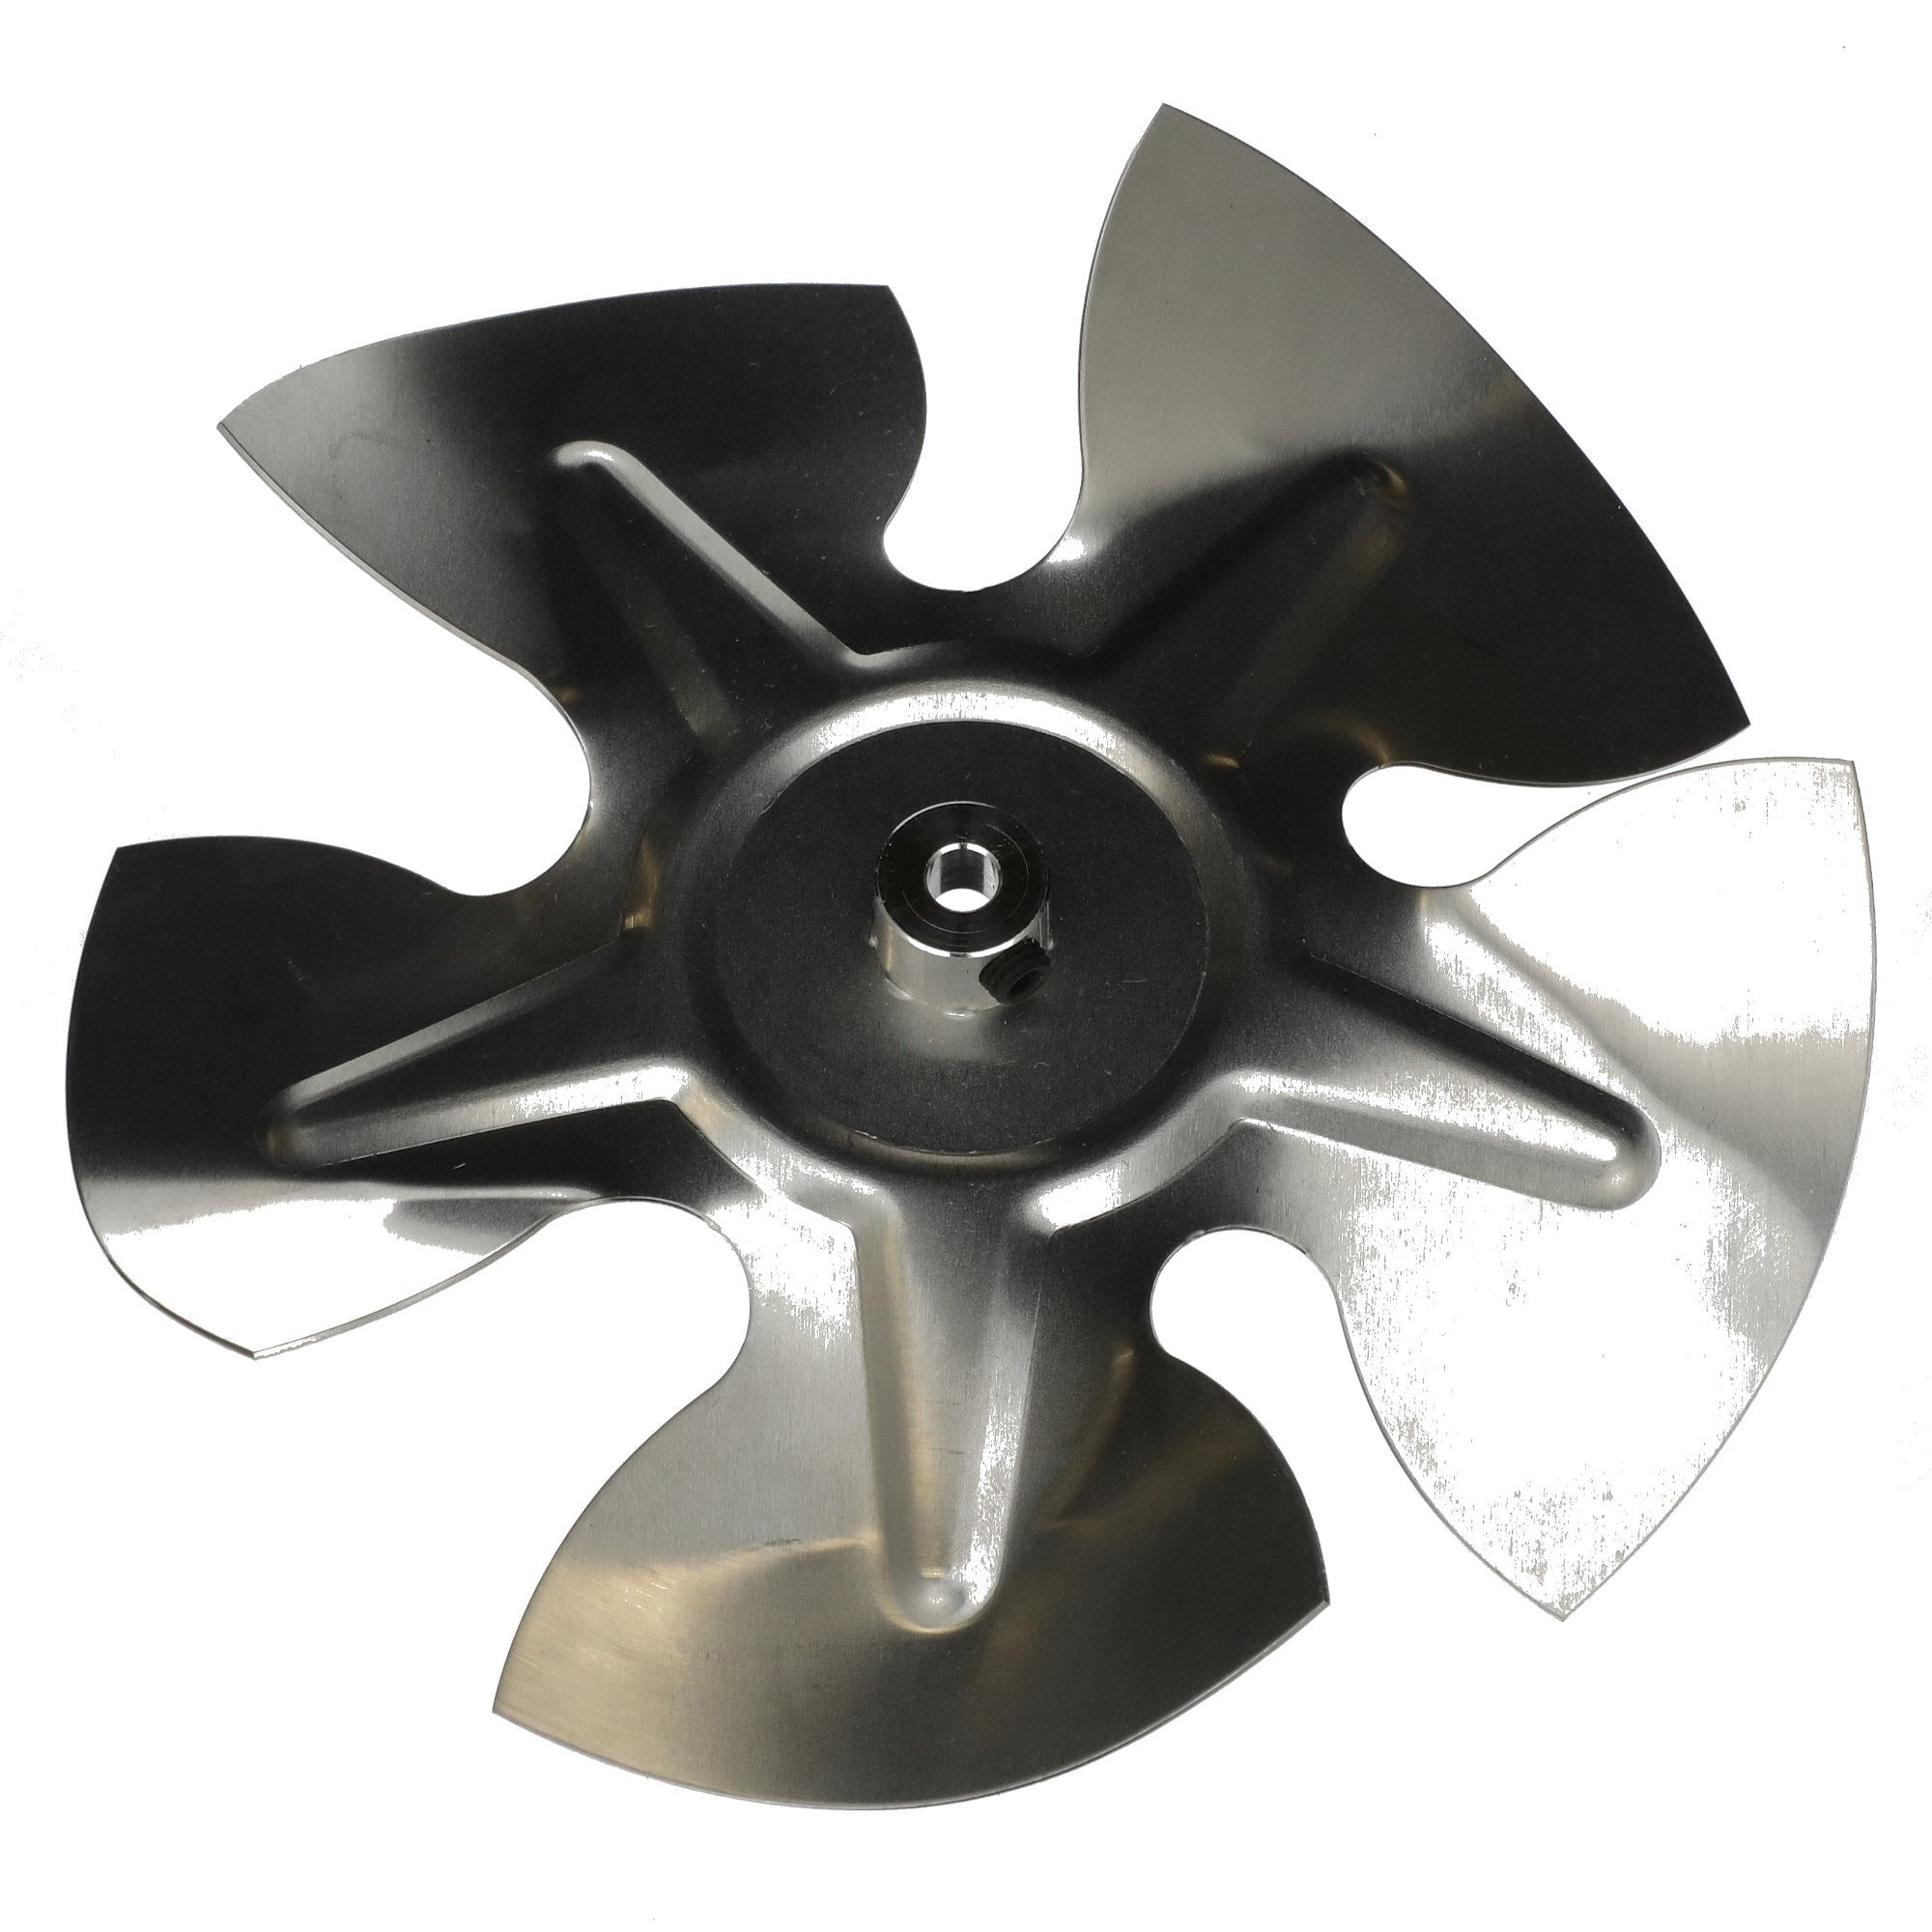 00-0050-0121 | Thelin Convection Fan Blade for all pellet stoves, 00-0050-0121